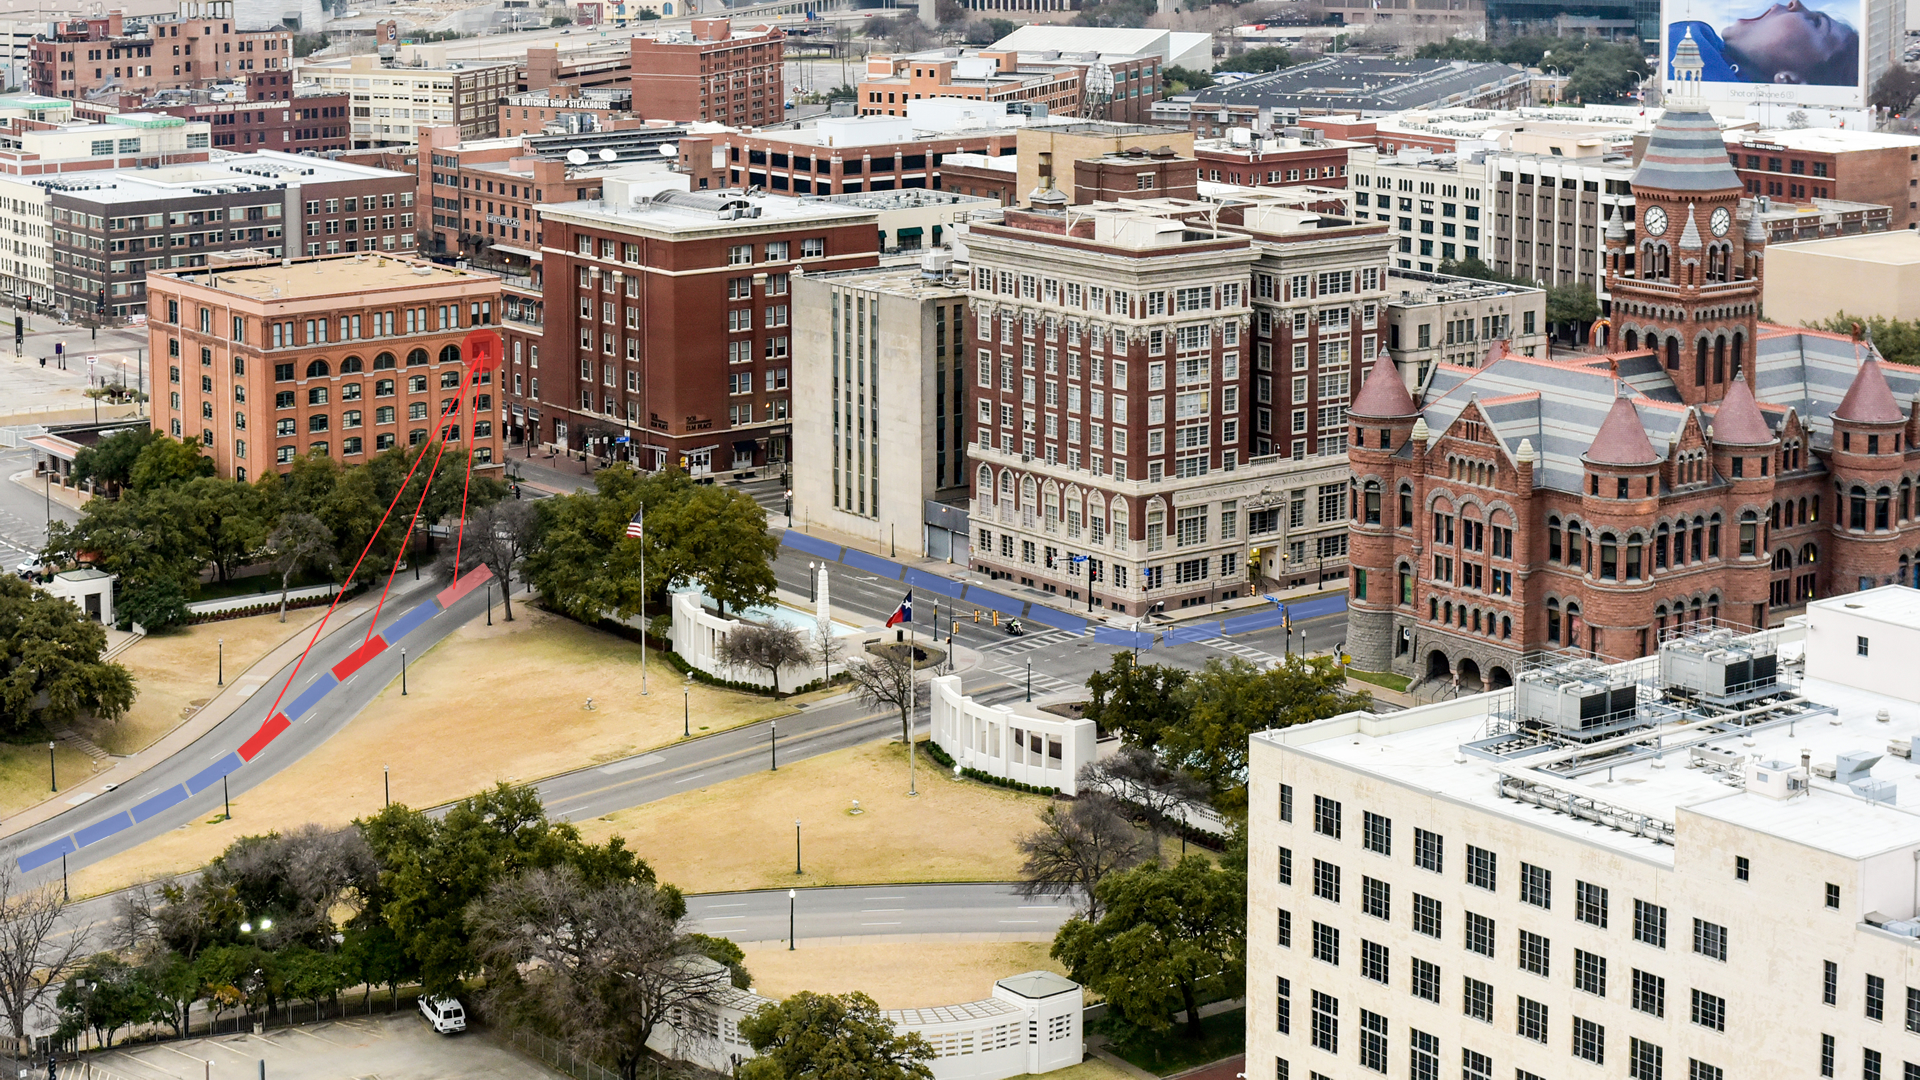 View of Dealey Plaza, the plaza is a significant part of Dallas history.